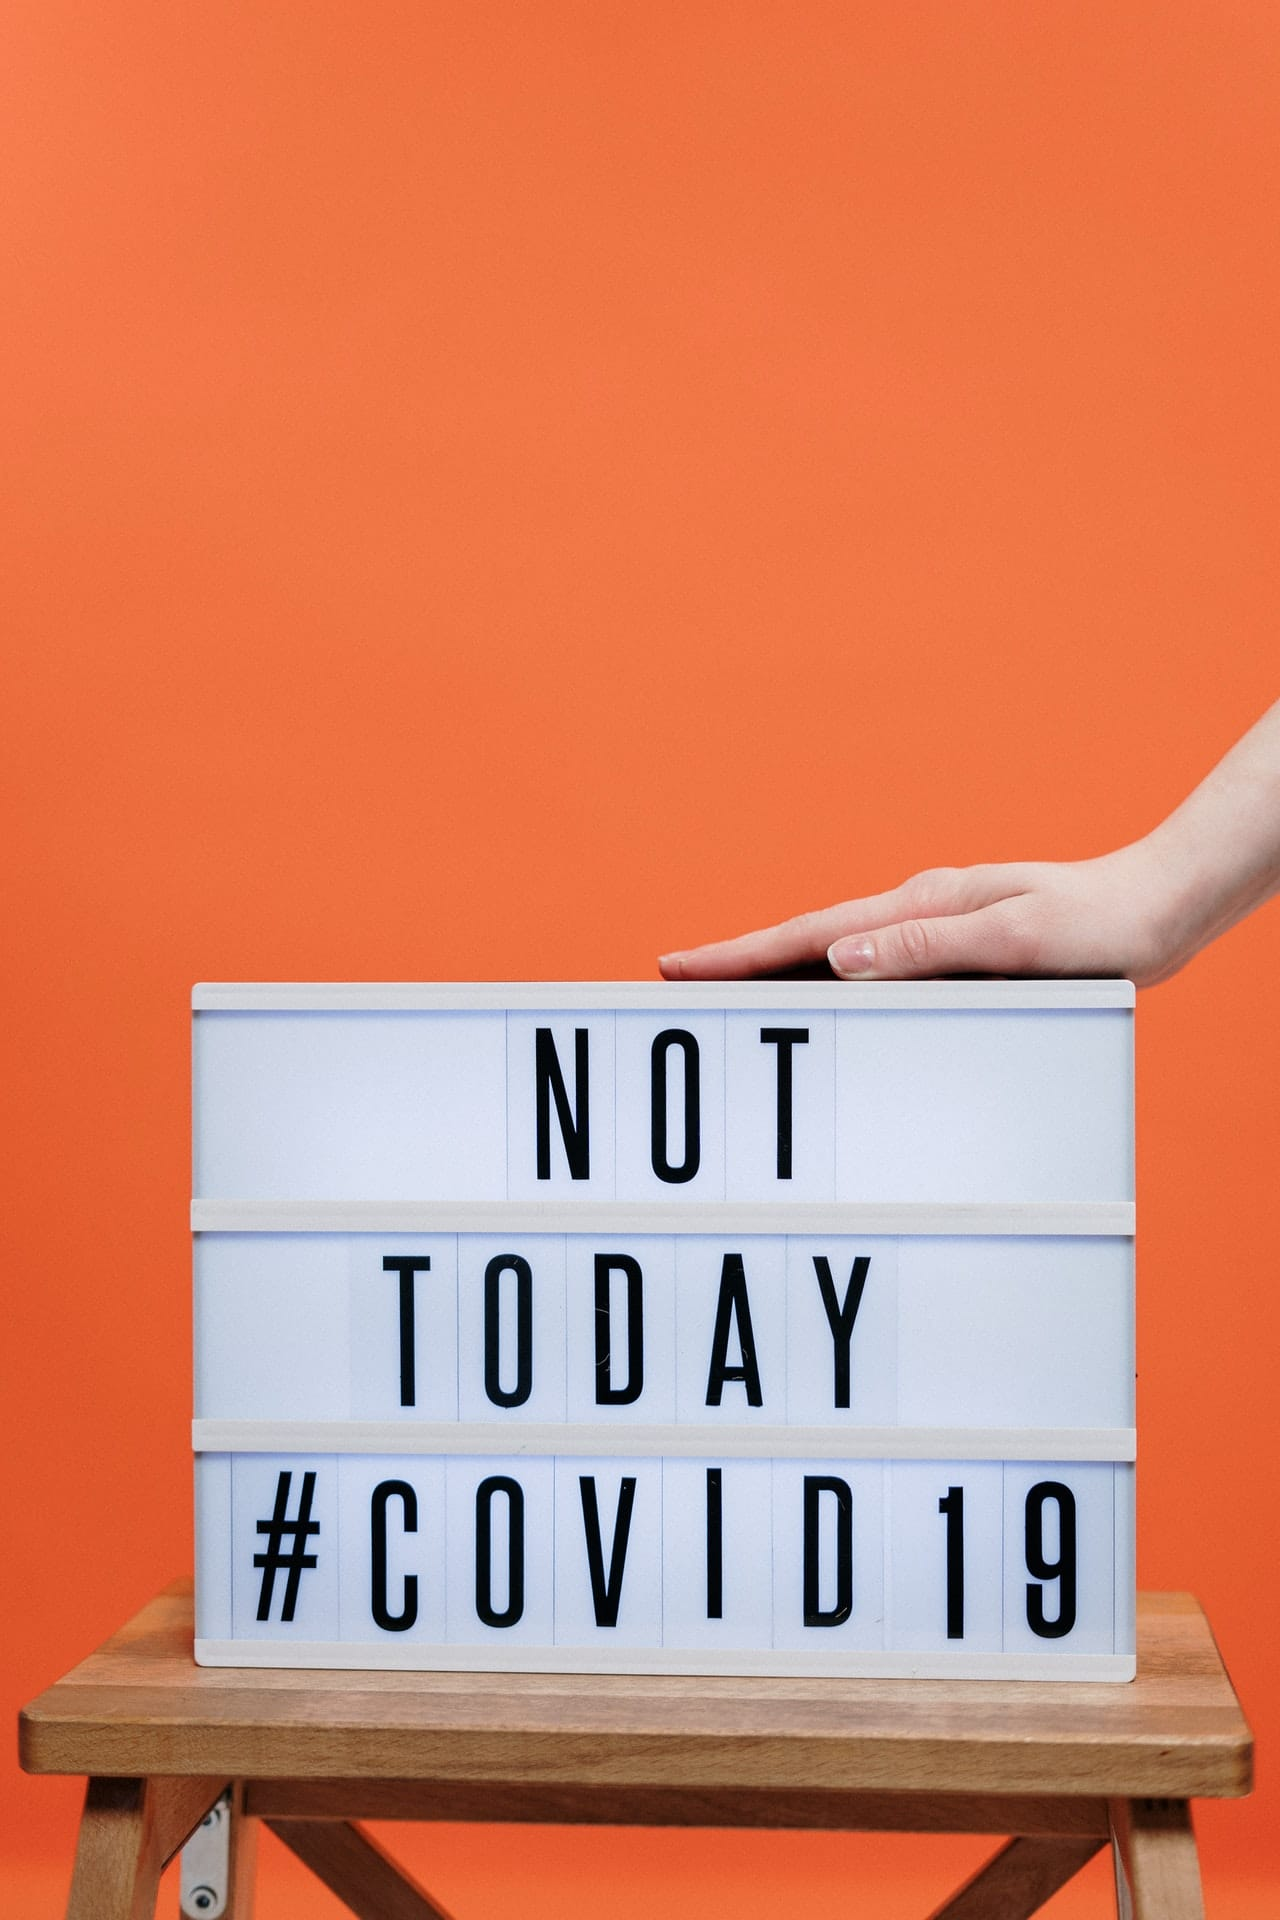 a sign that says not today #covid19 with a hand over it